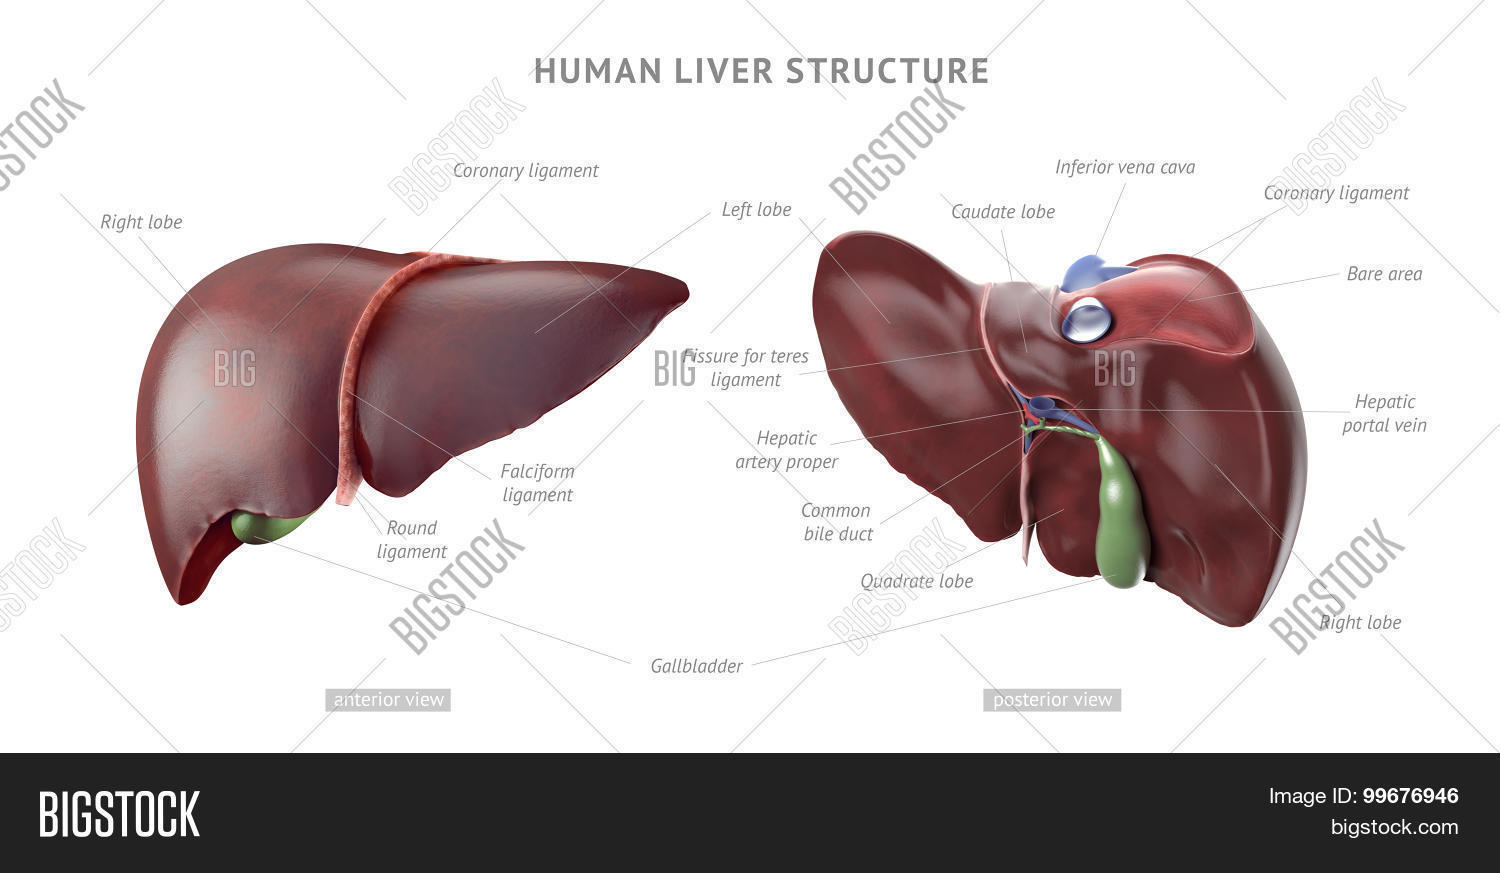 Human Liver Anatomy Image & Photo | Bigstock